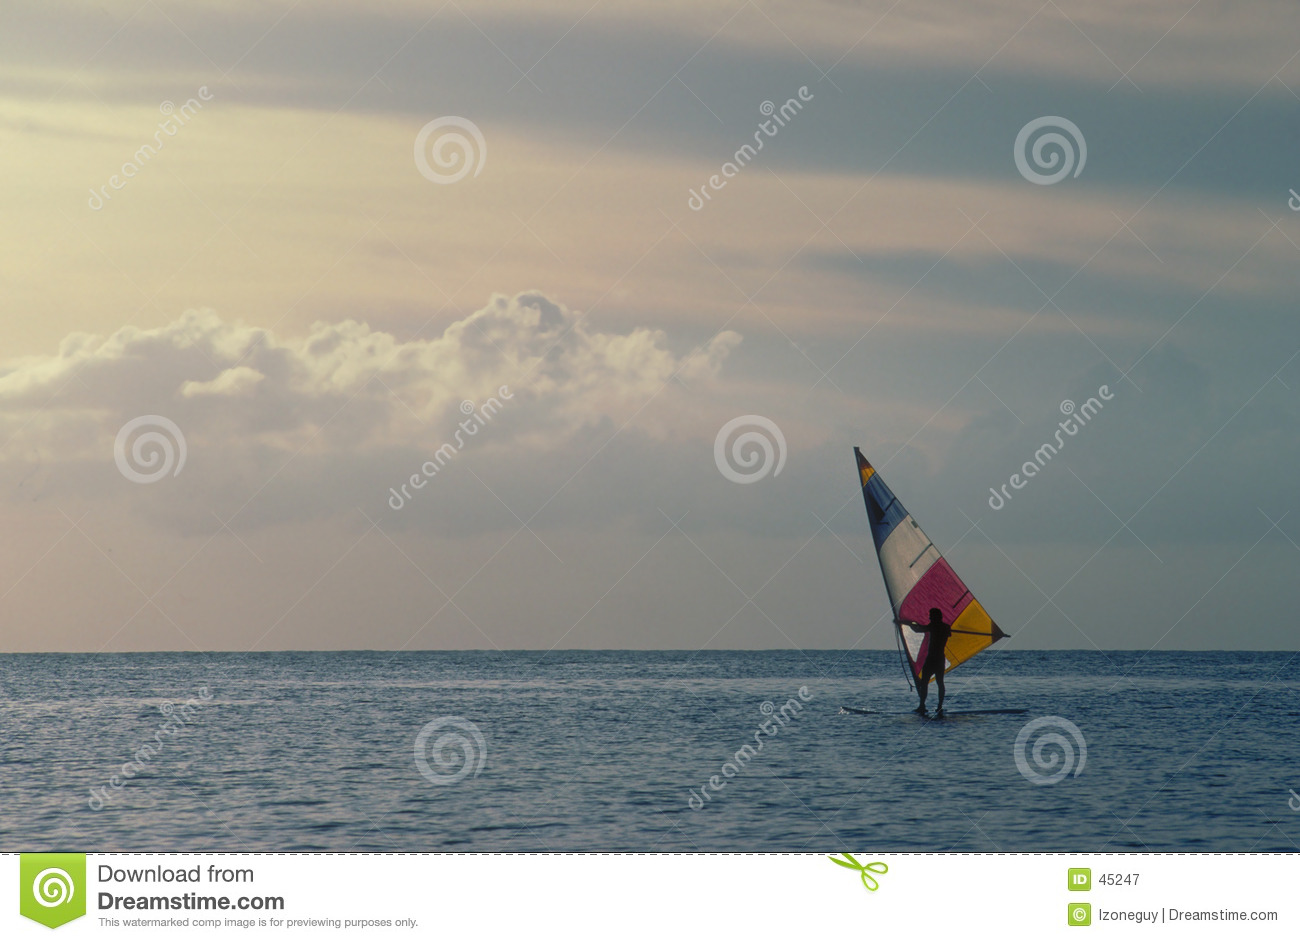 Download Wind Surfer stock image. Image of water, surfer, clouds - 45247